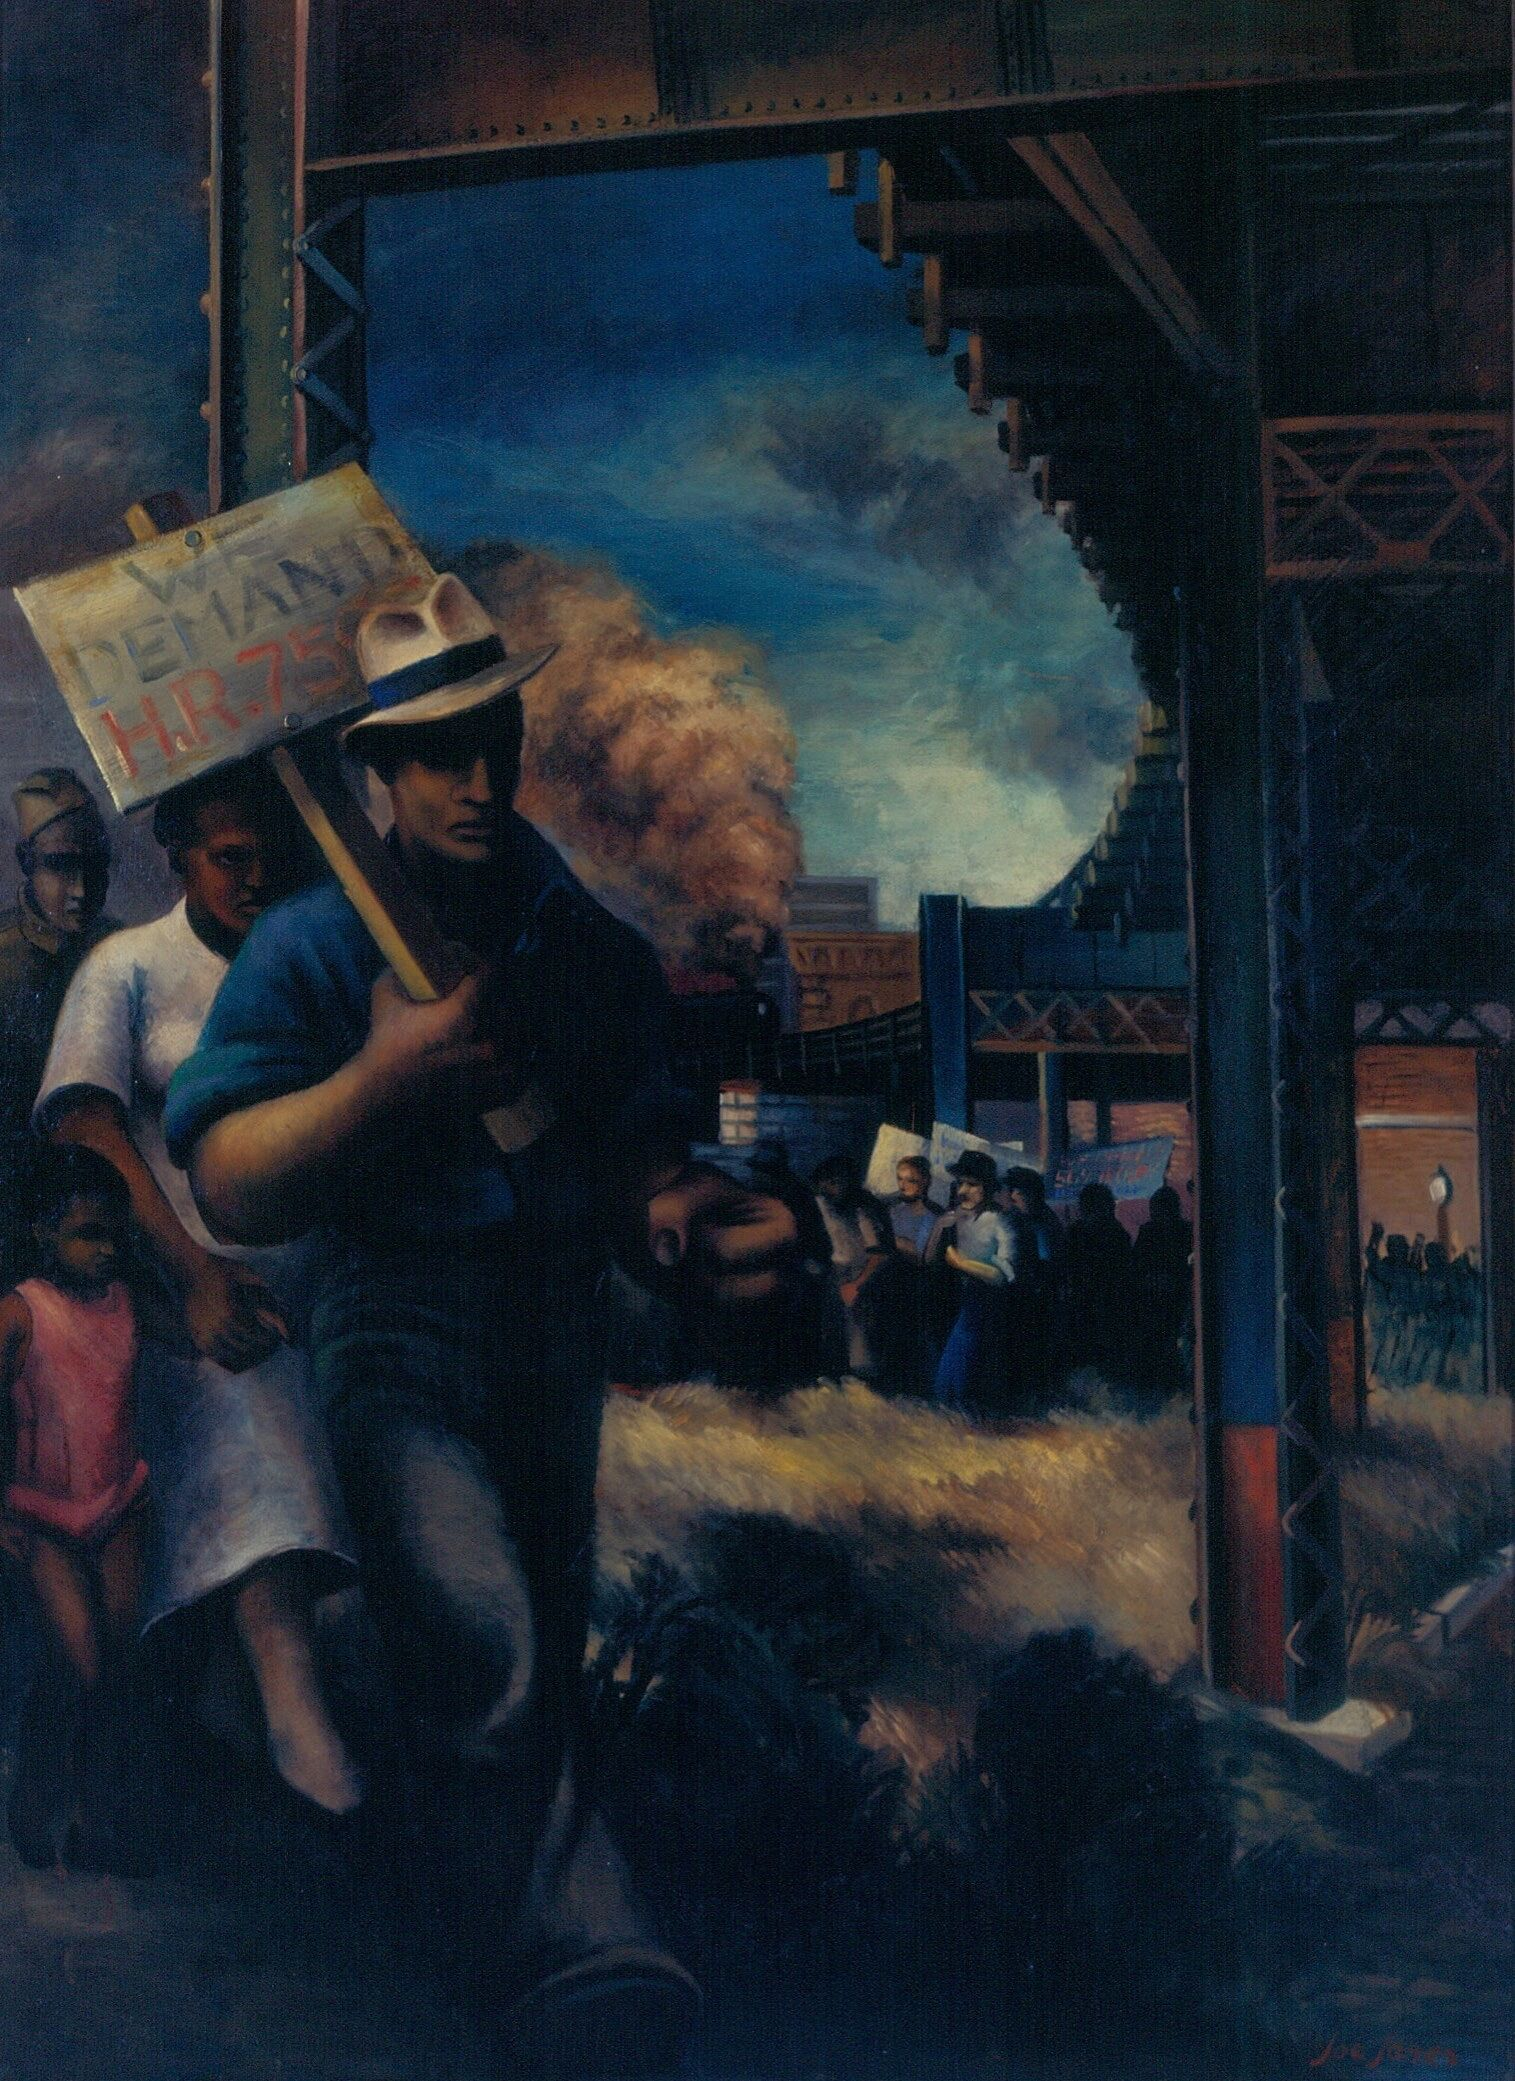 A painting depicting a line of people with picket signs.